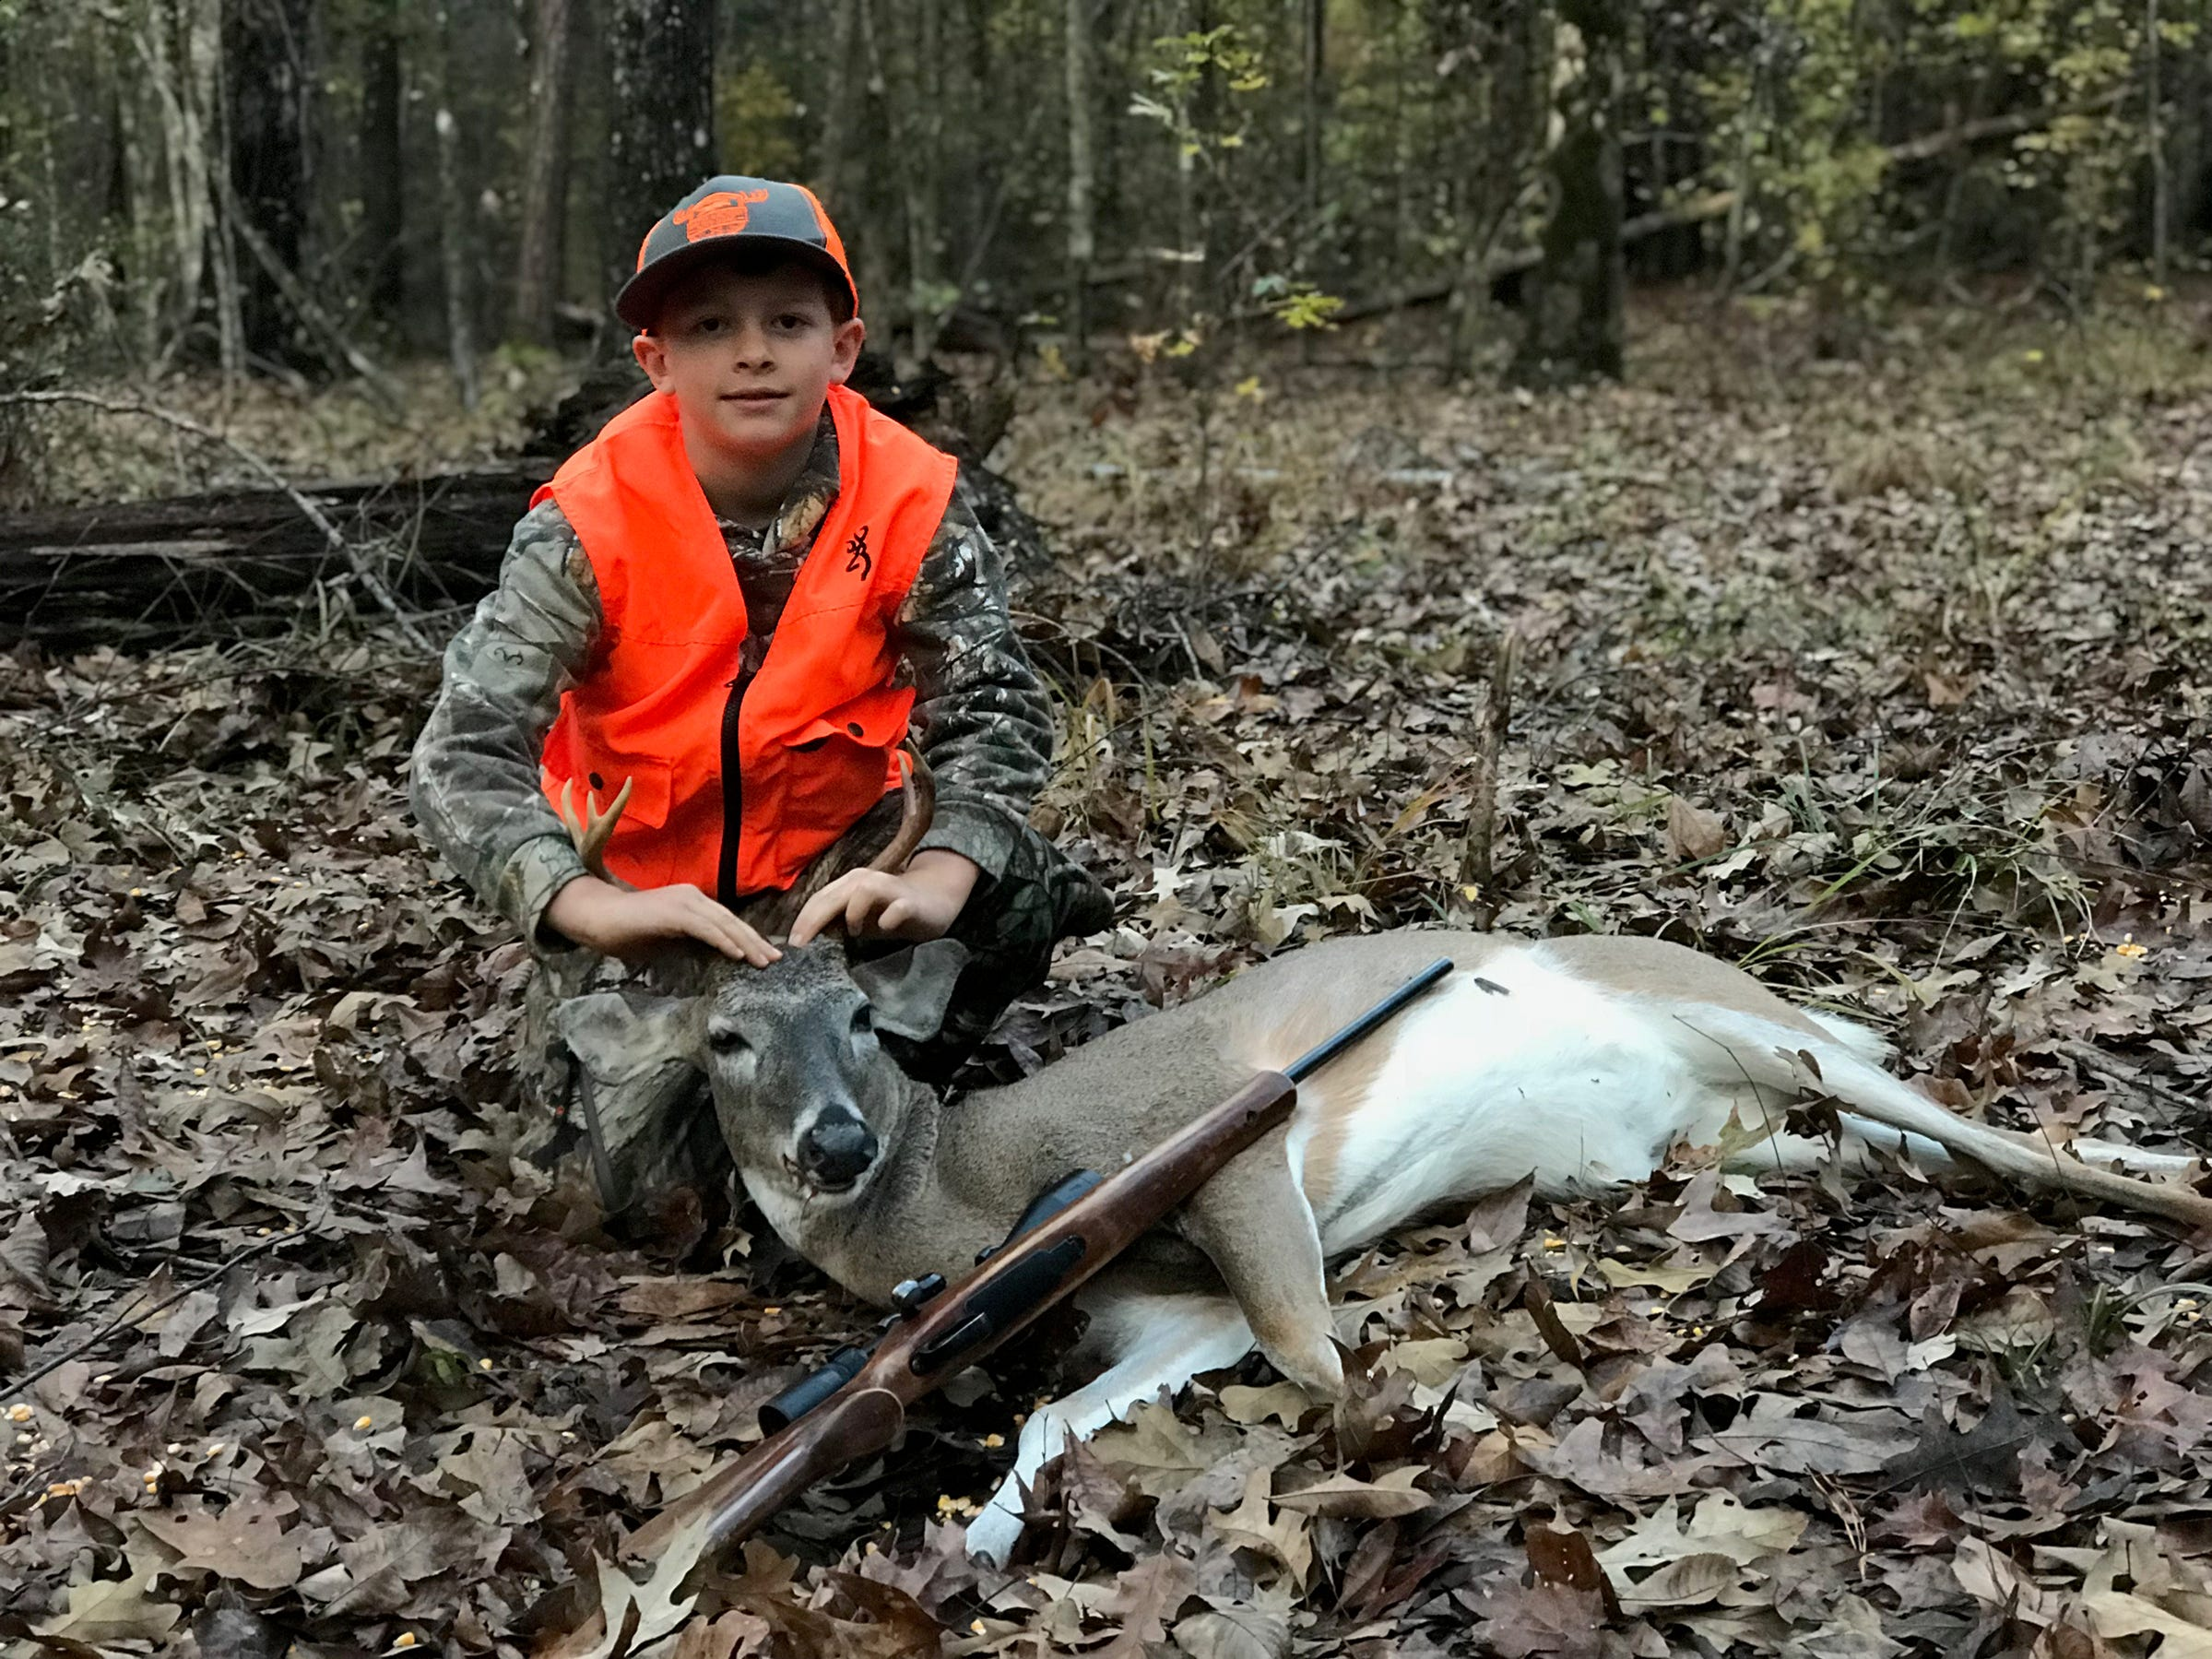 Gunnar Bunger, 8, of Madison, made a 75-yard shot and harvested his first deer.